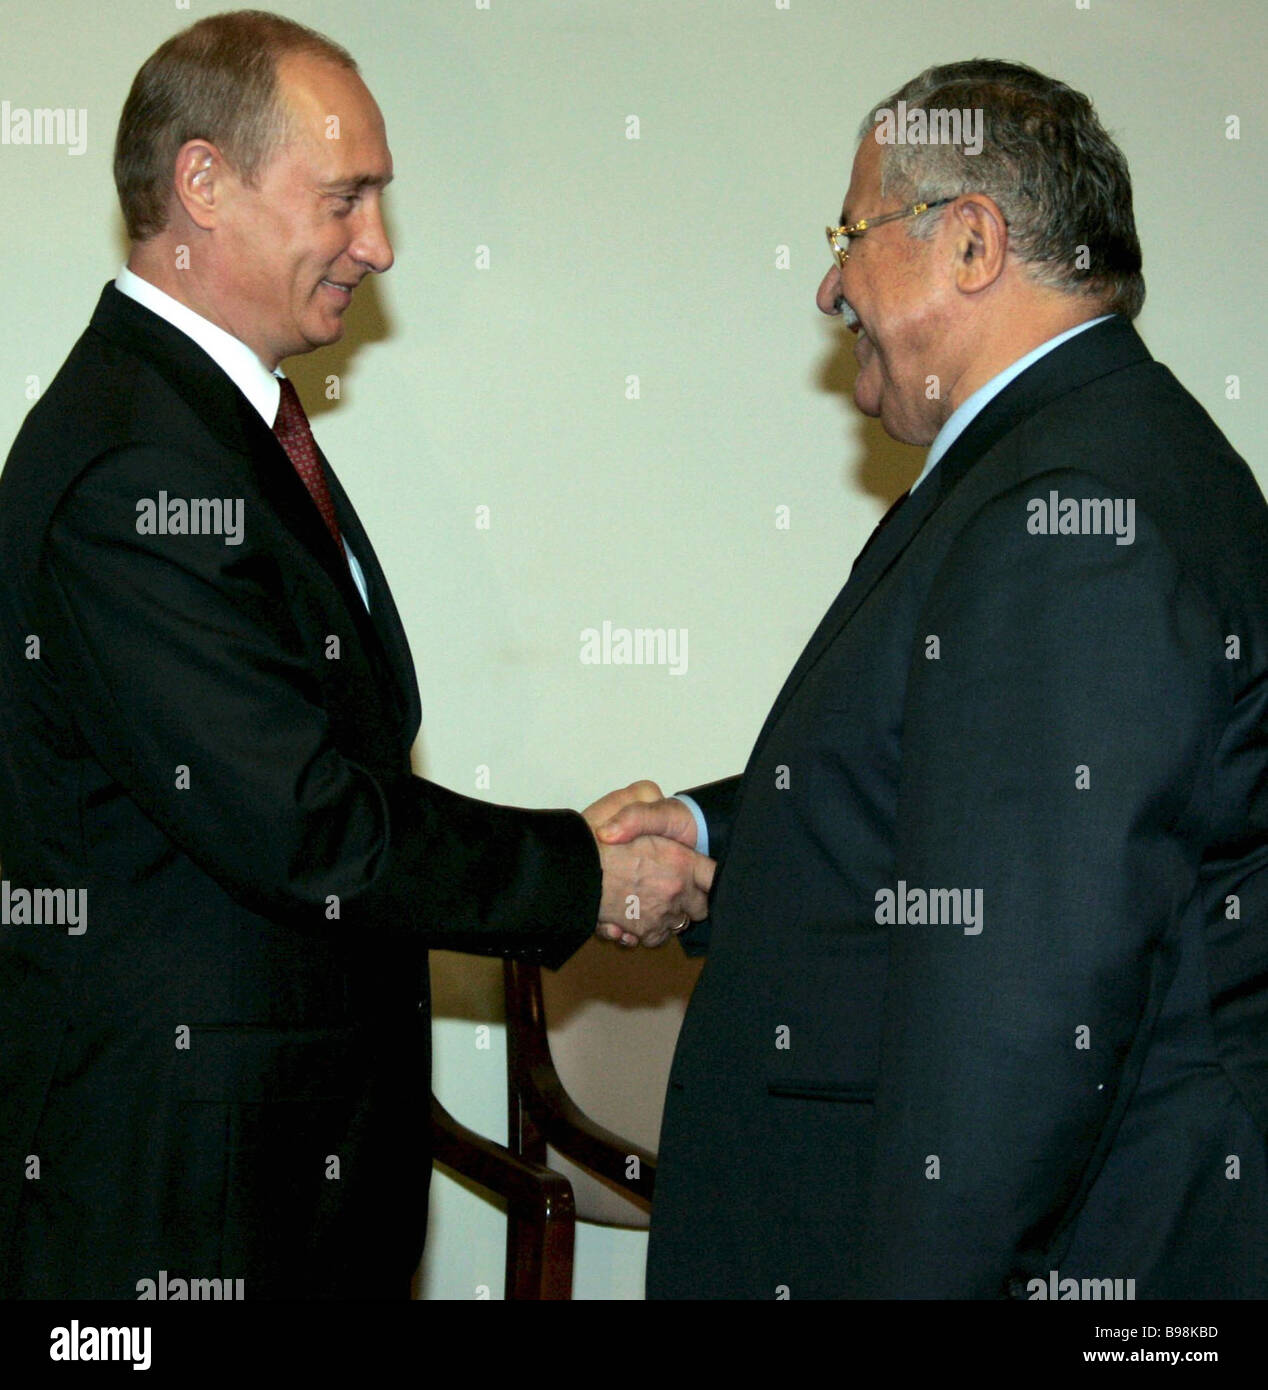 Presidents Vladimir Putin of Russia left and Jalal Talabani of Iraq meet in New York City during UN member states Stock Photo